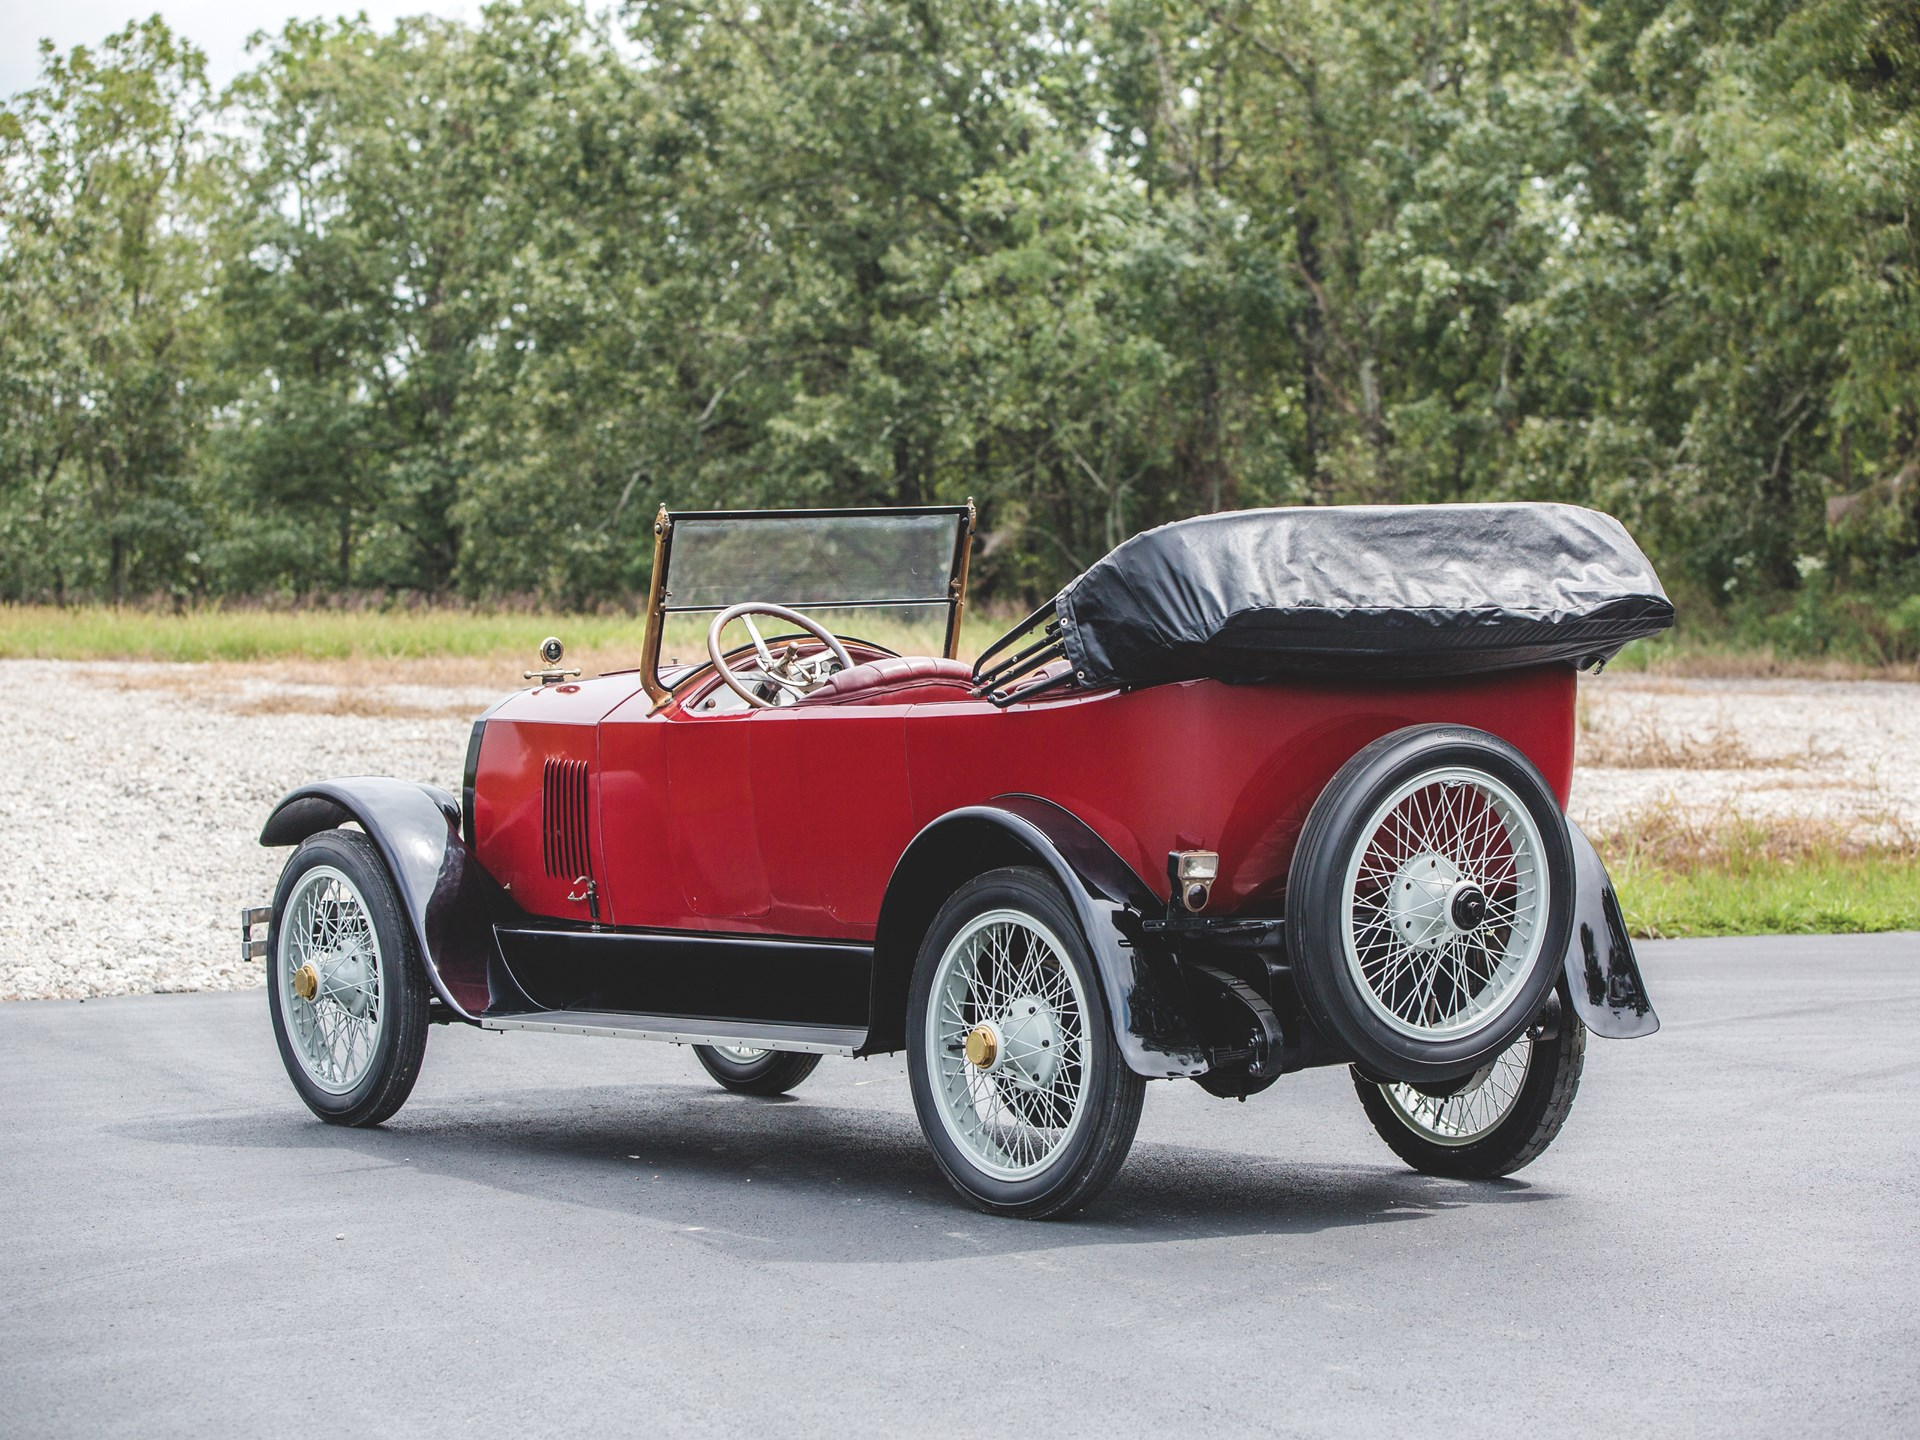 1919 Apperson 8-19 Anniversary Touring